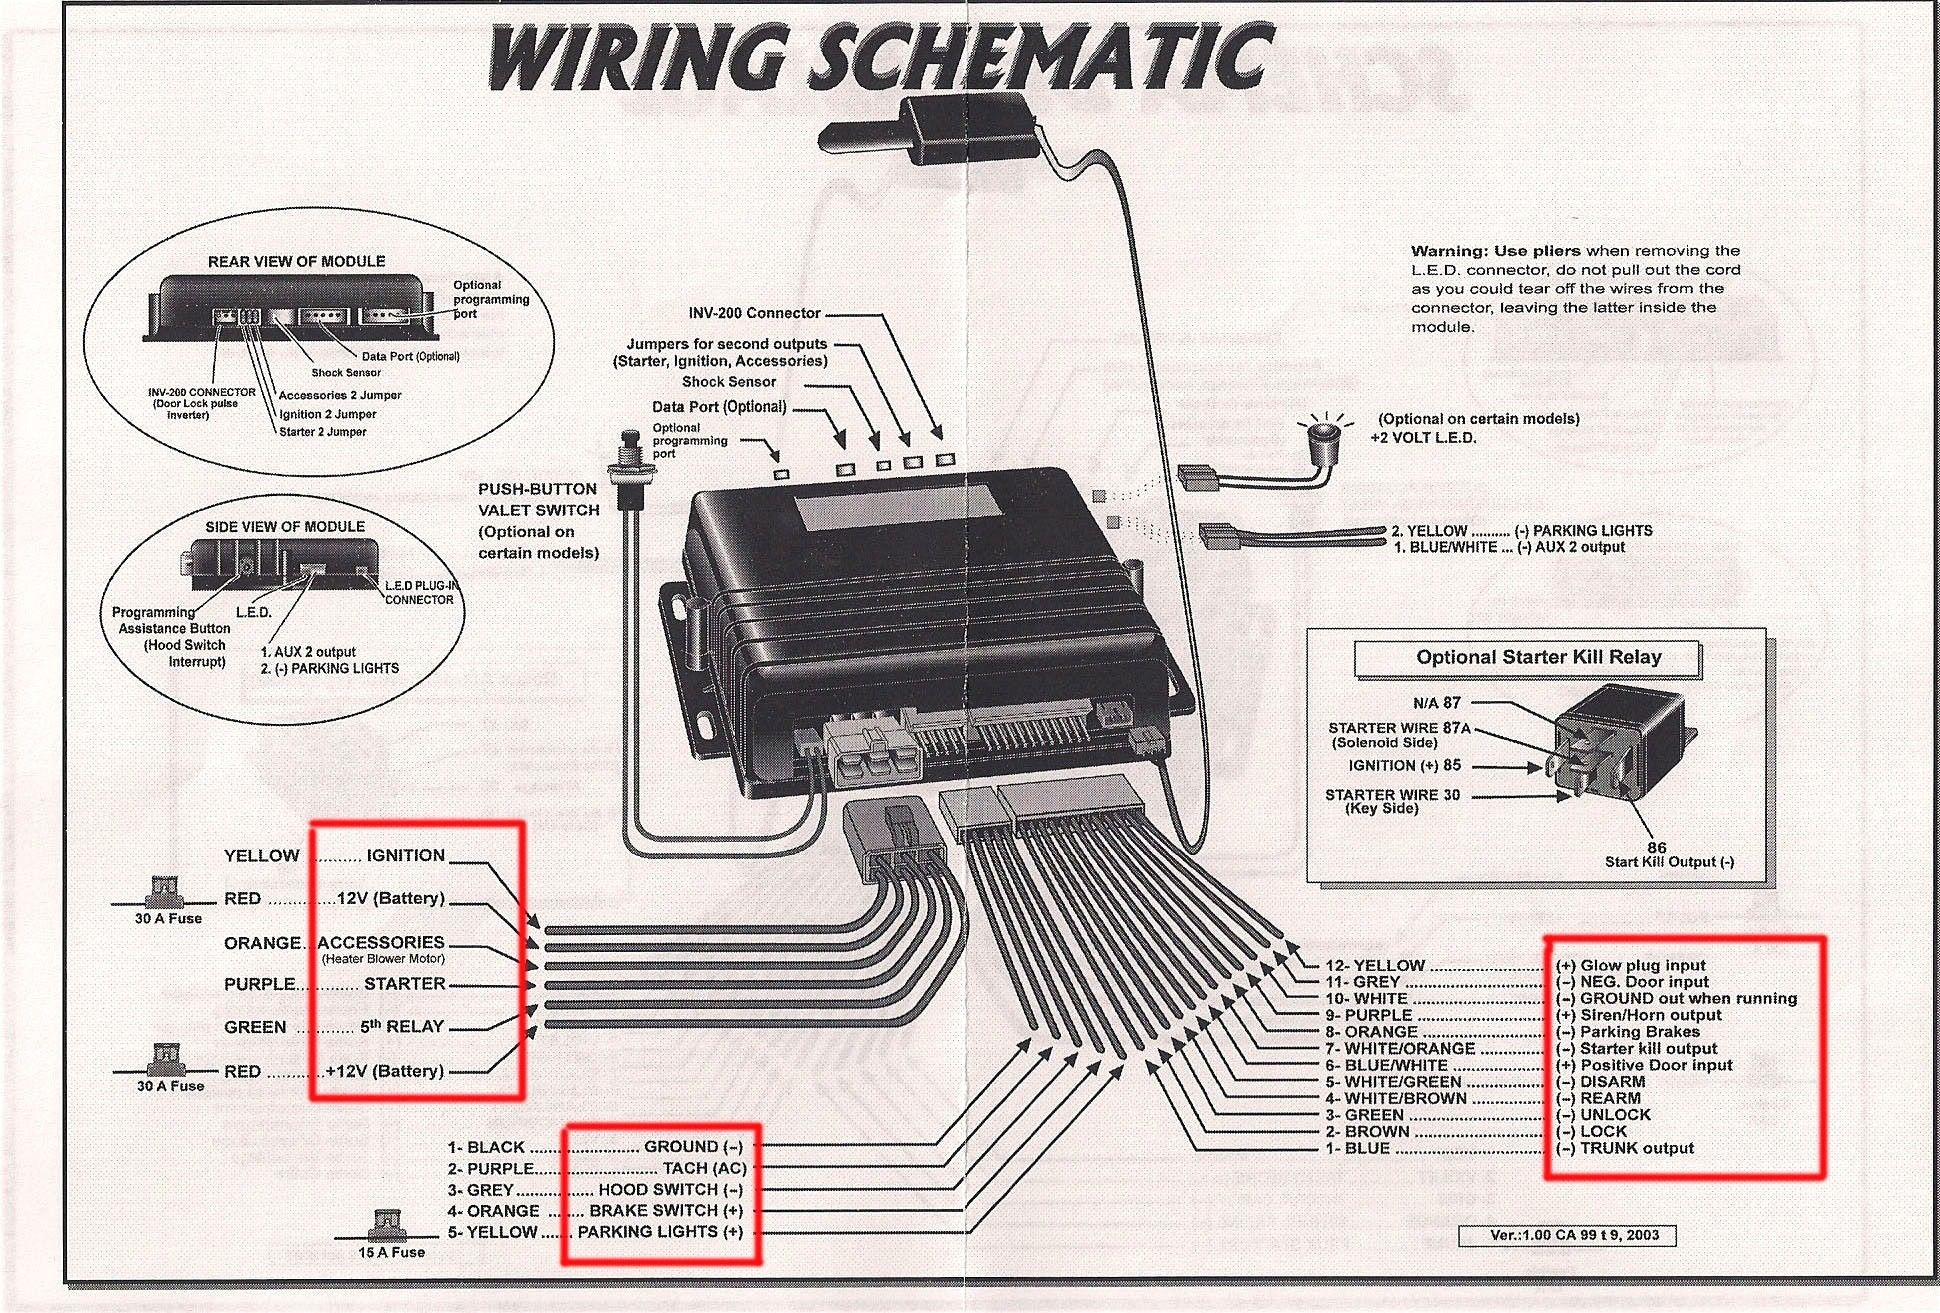 Bmw E46 Central Locking Wiring Diagram Diagram Diagramtemplate Diagramsample Check More At Https Servis Car Alarm Viper Car Wireless Home Security Systems